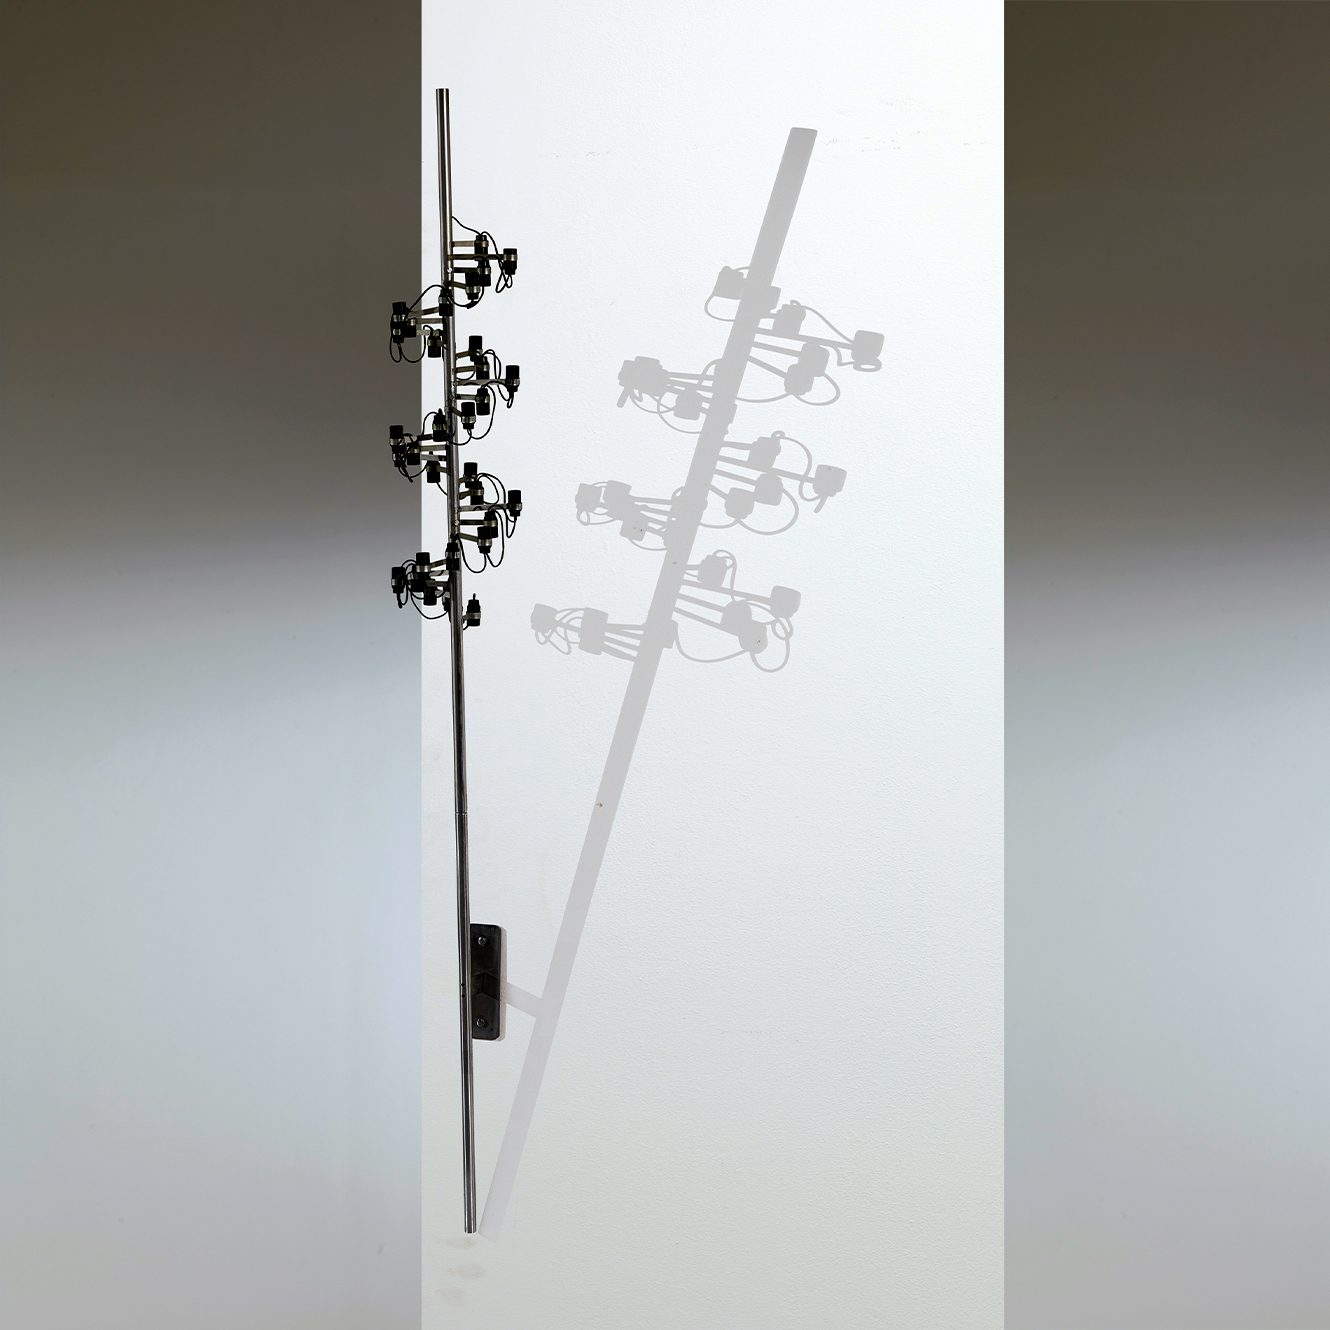 Gino Sarfatti |                                  Wall lamp model 226 /a